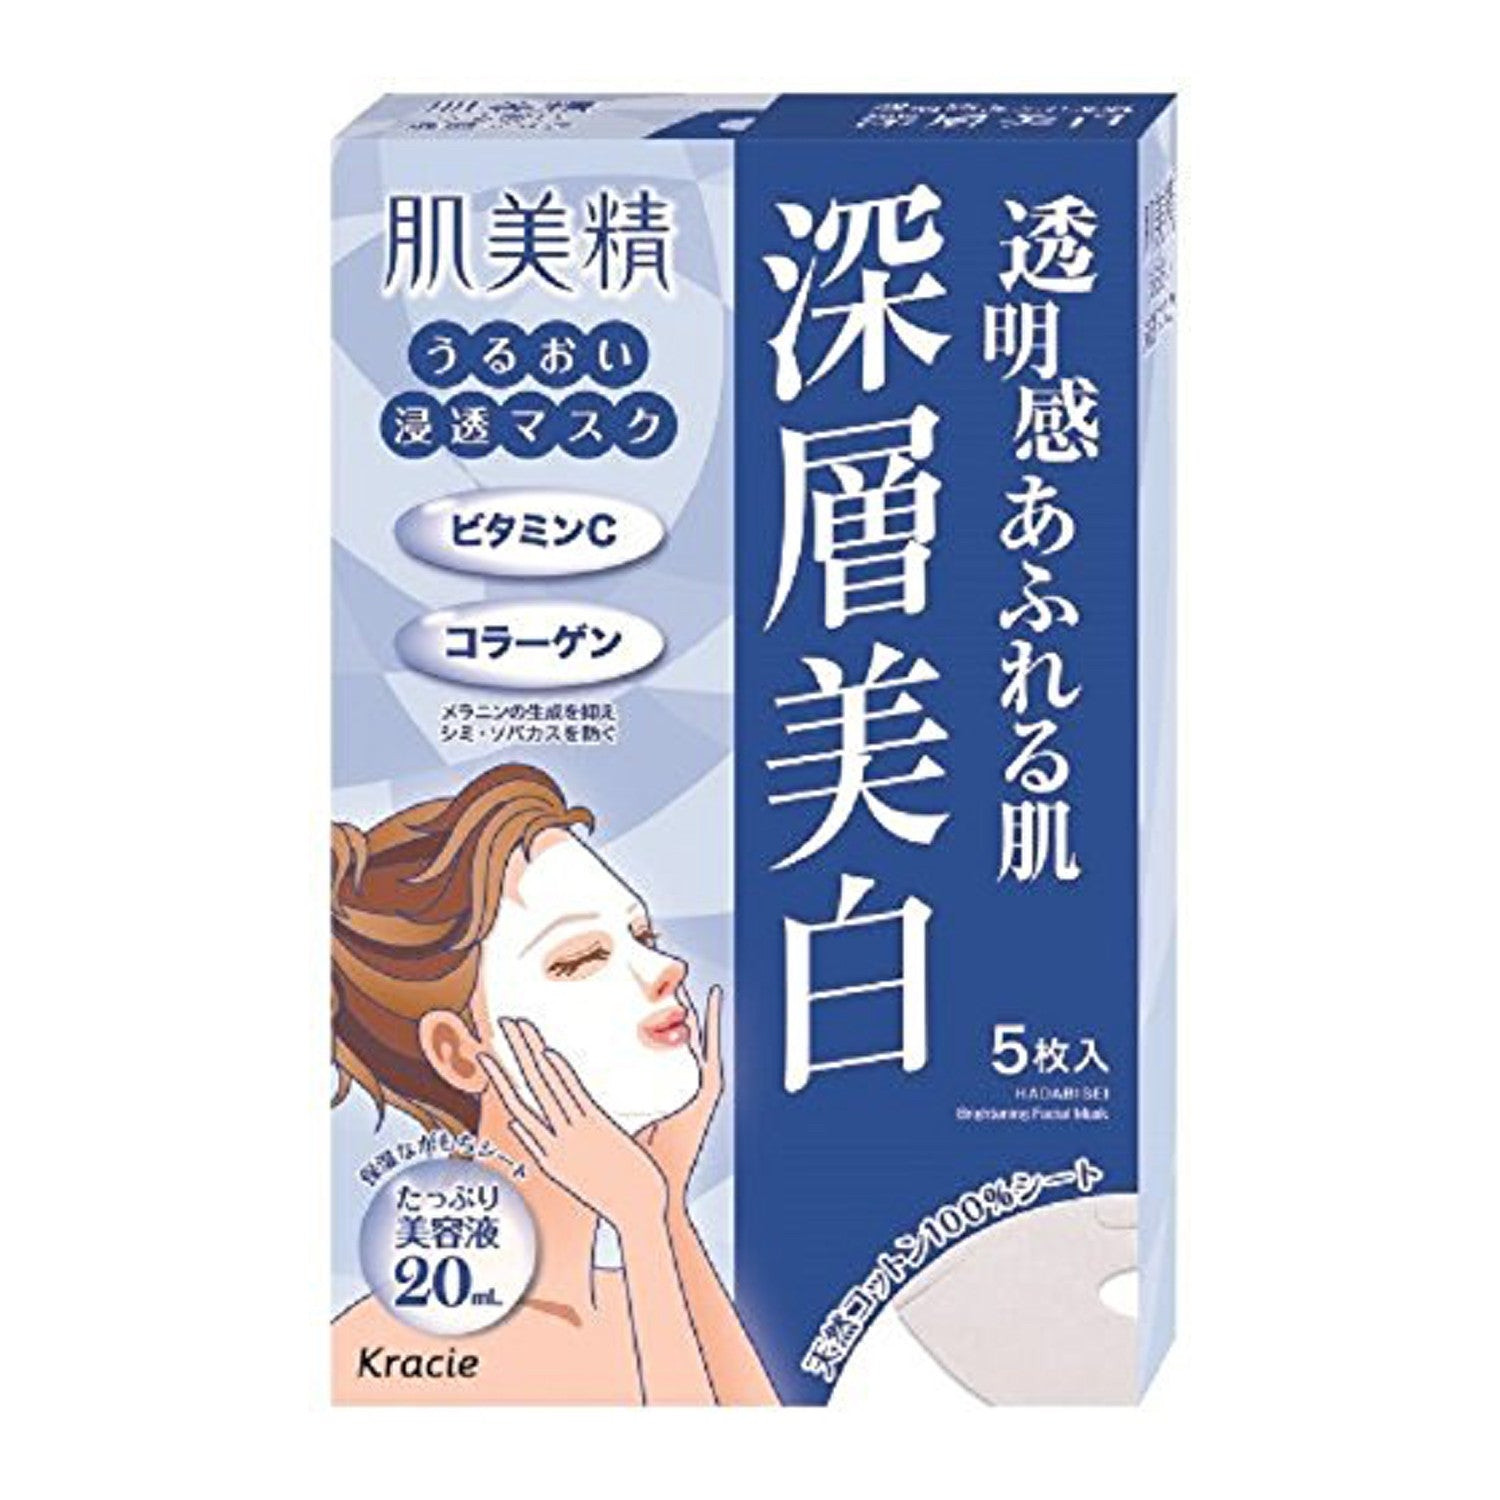 Kracie Hadabisei Facial Mask Clear (Whitening) -(1 sheet/20ml essence)- 5 count